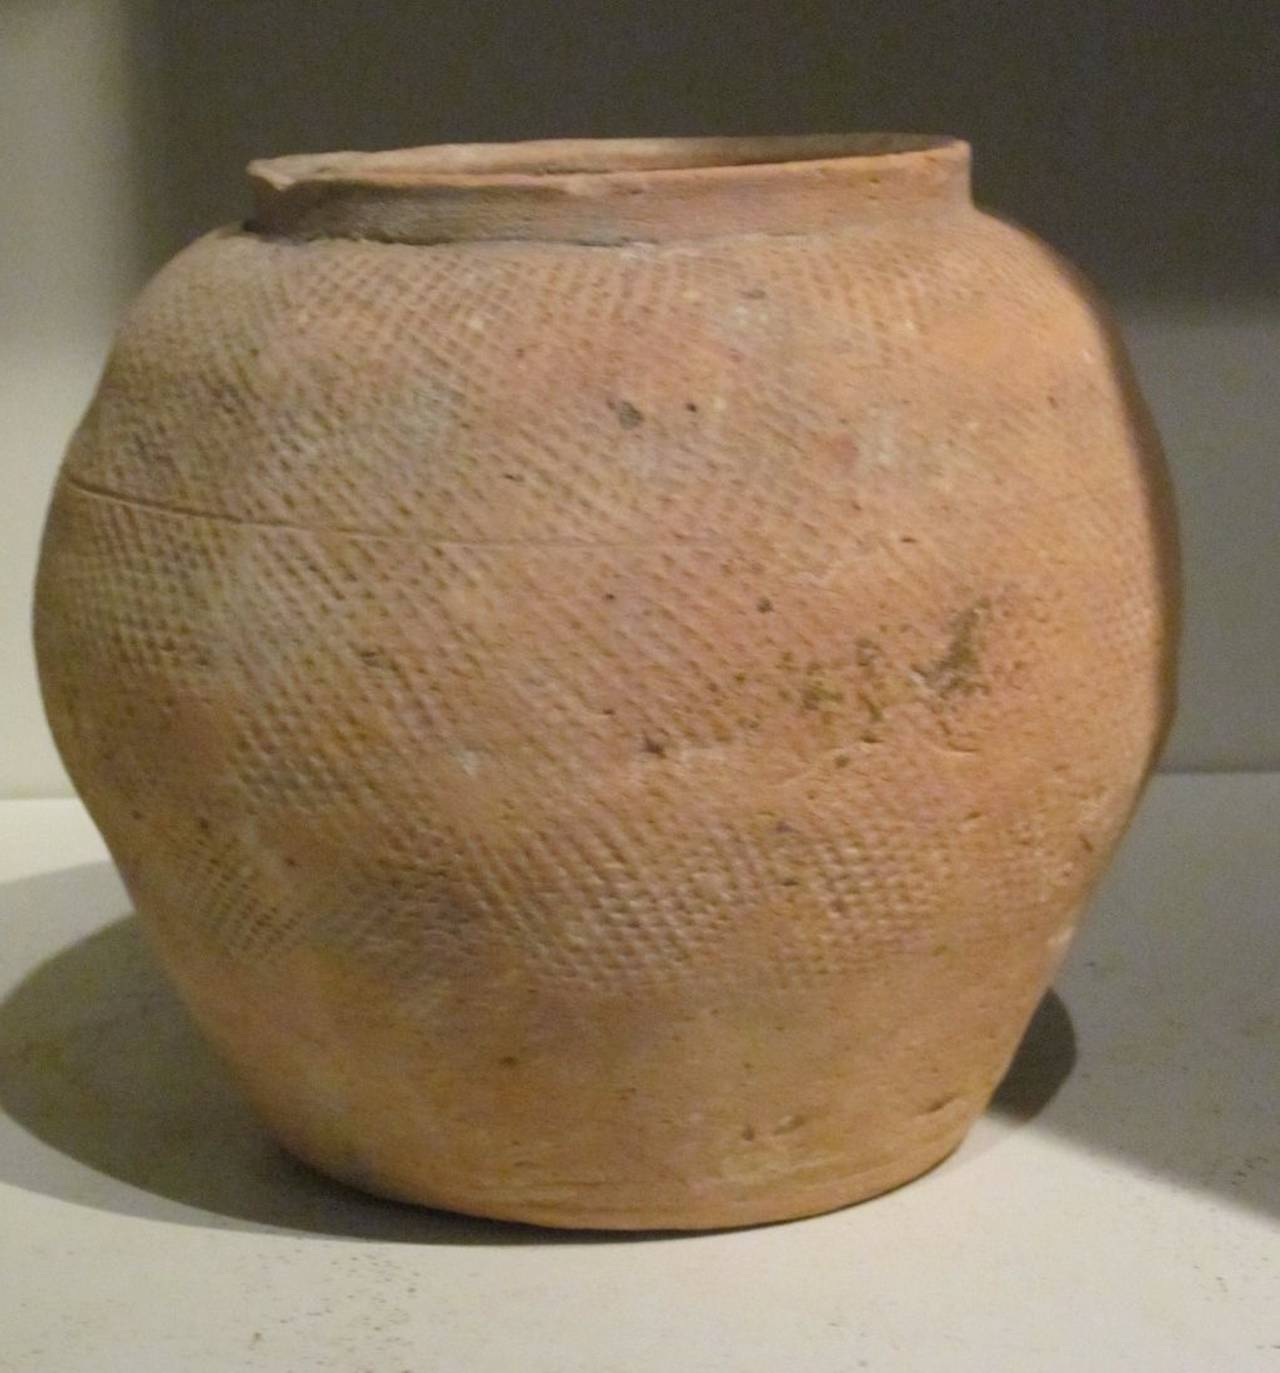 Textured Terra Cotta Pots, North Vietnam, 19th Century For Sale 1